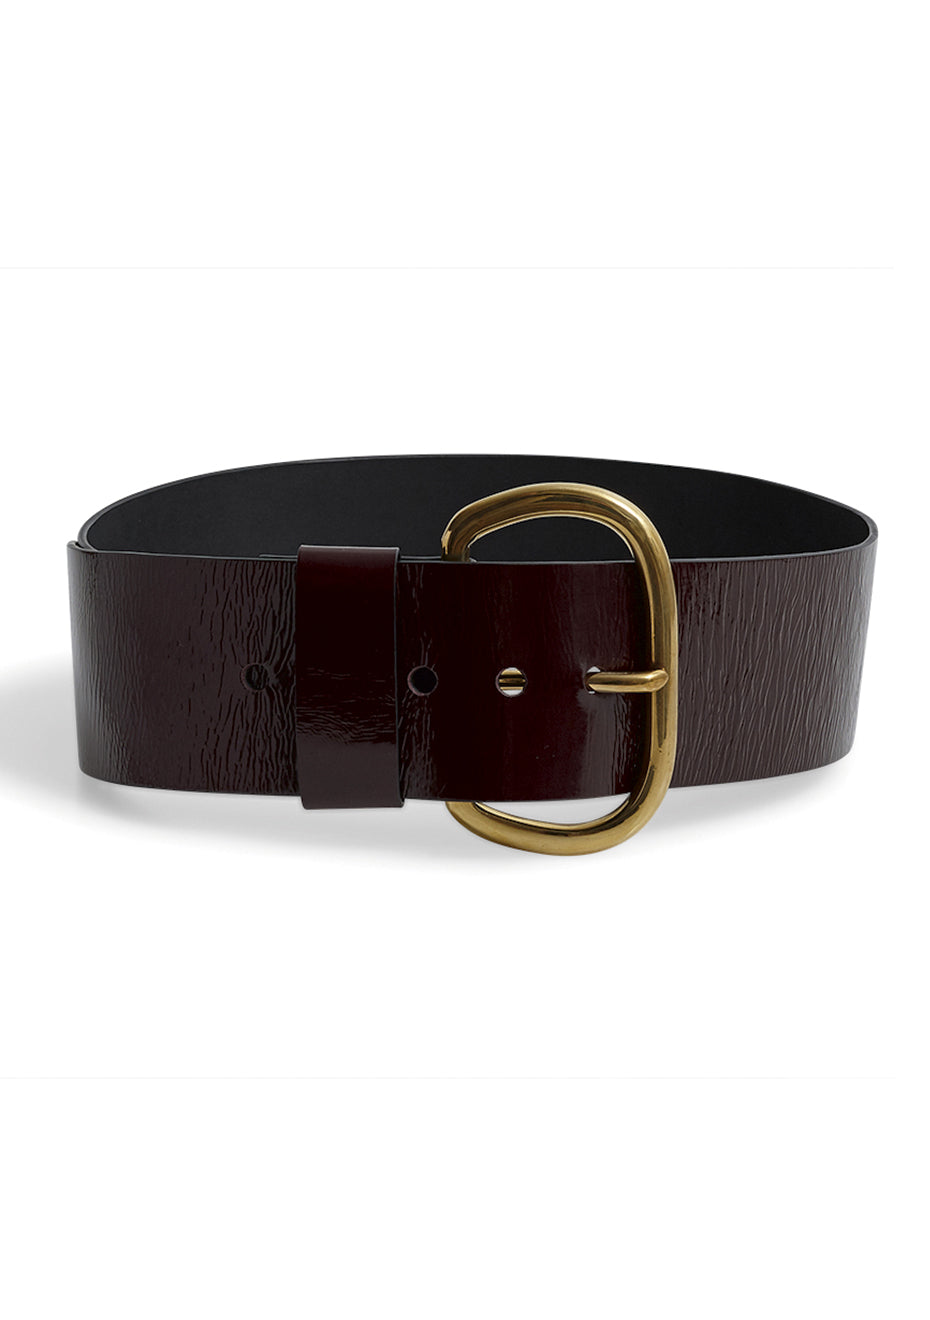 Wide Estate Belt Burgundy Patent